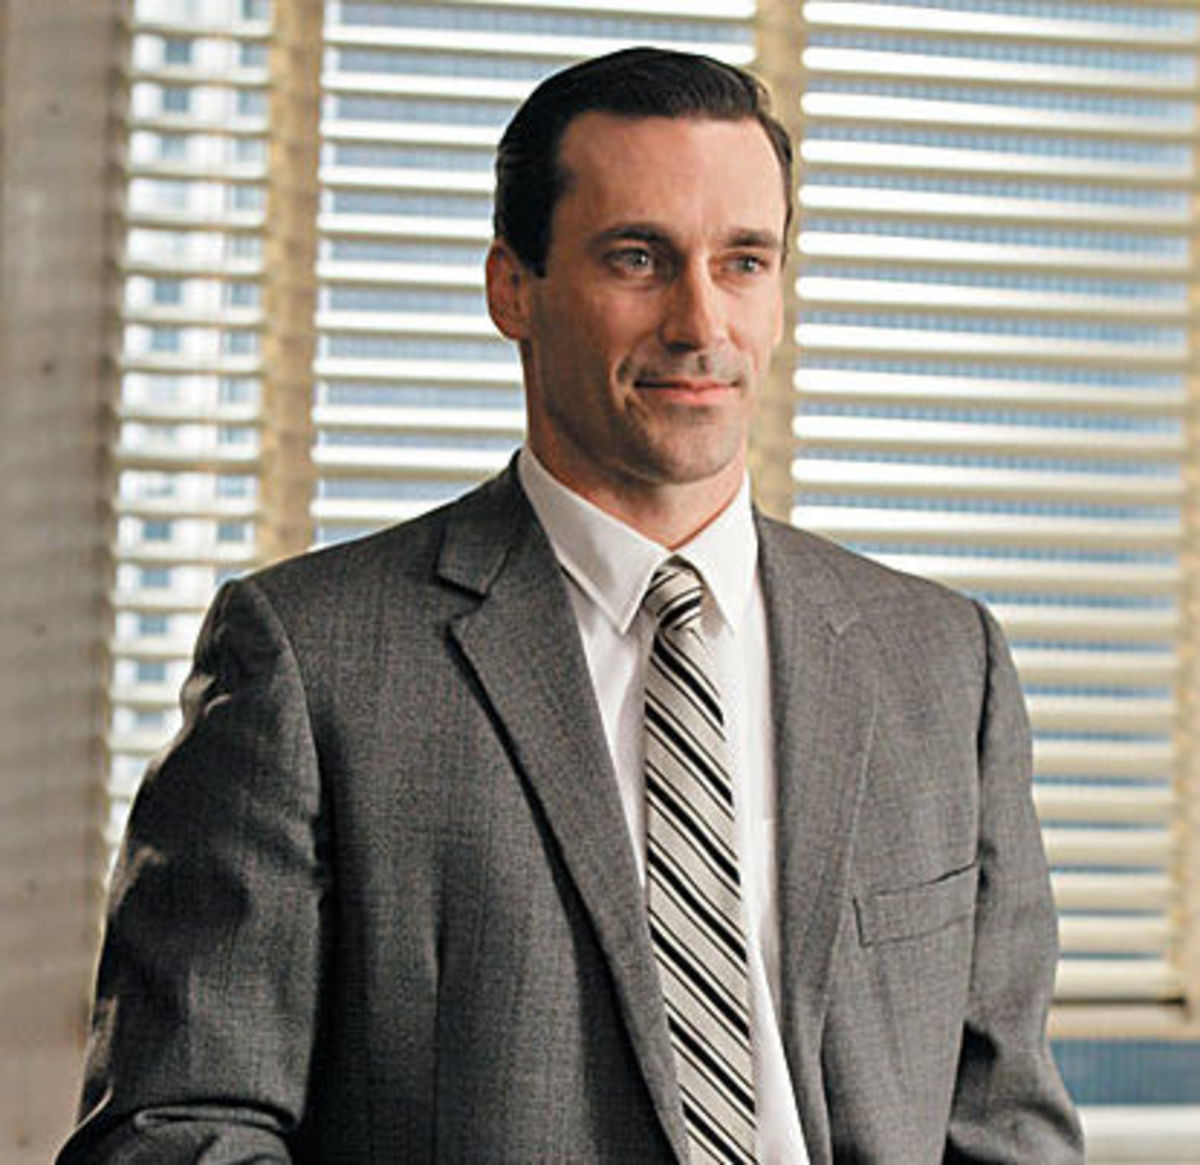 Don Draper hairstyle.